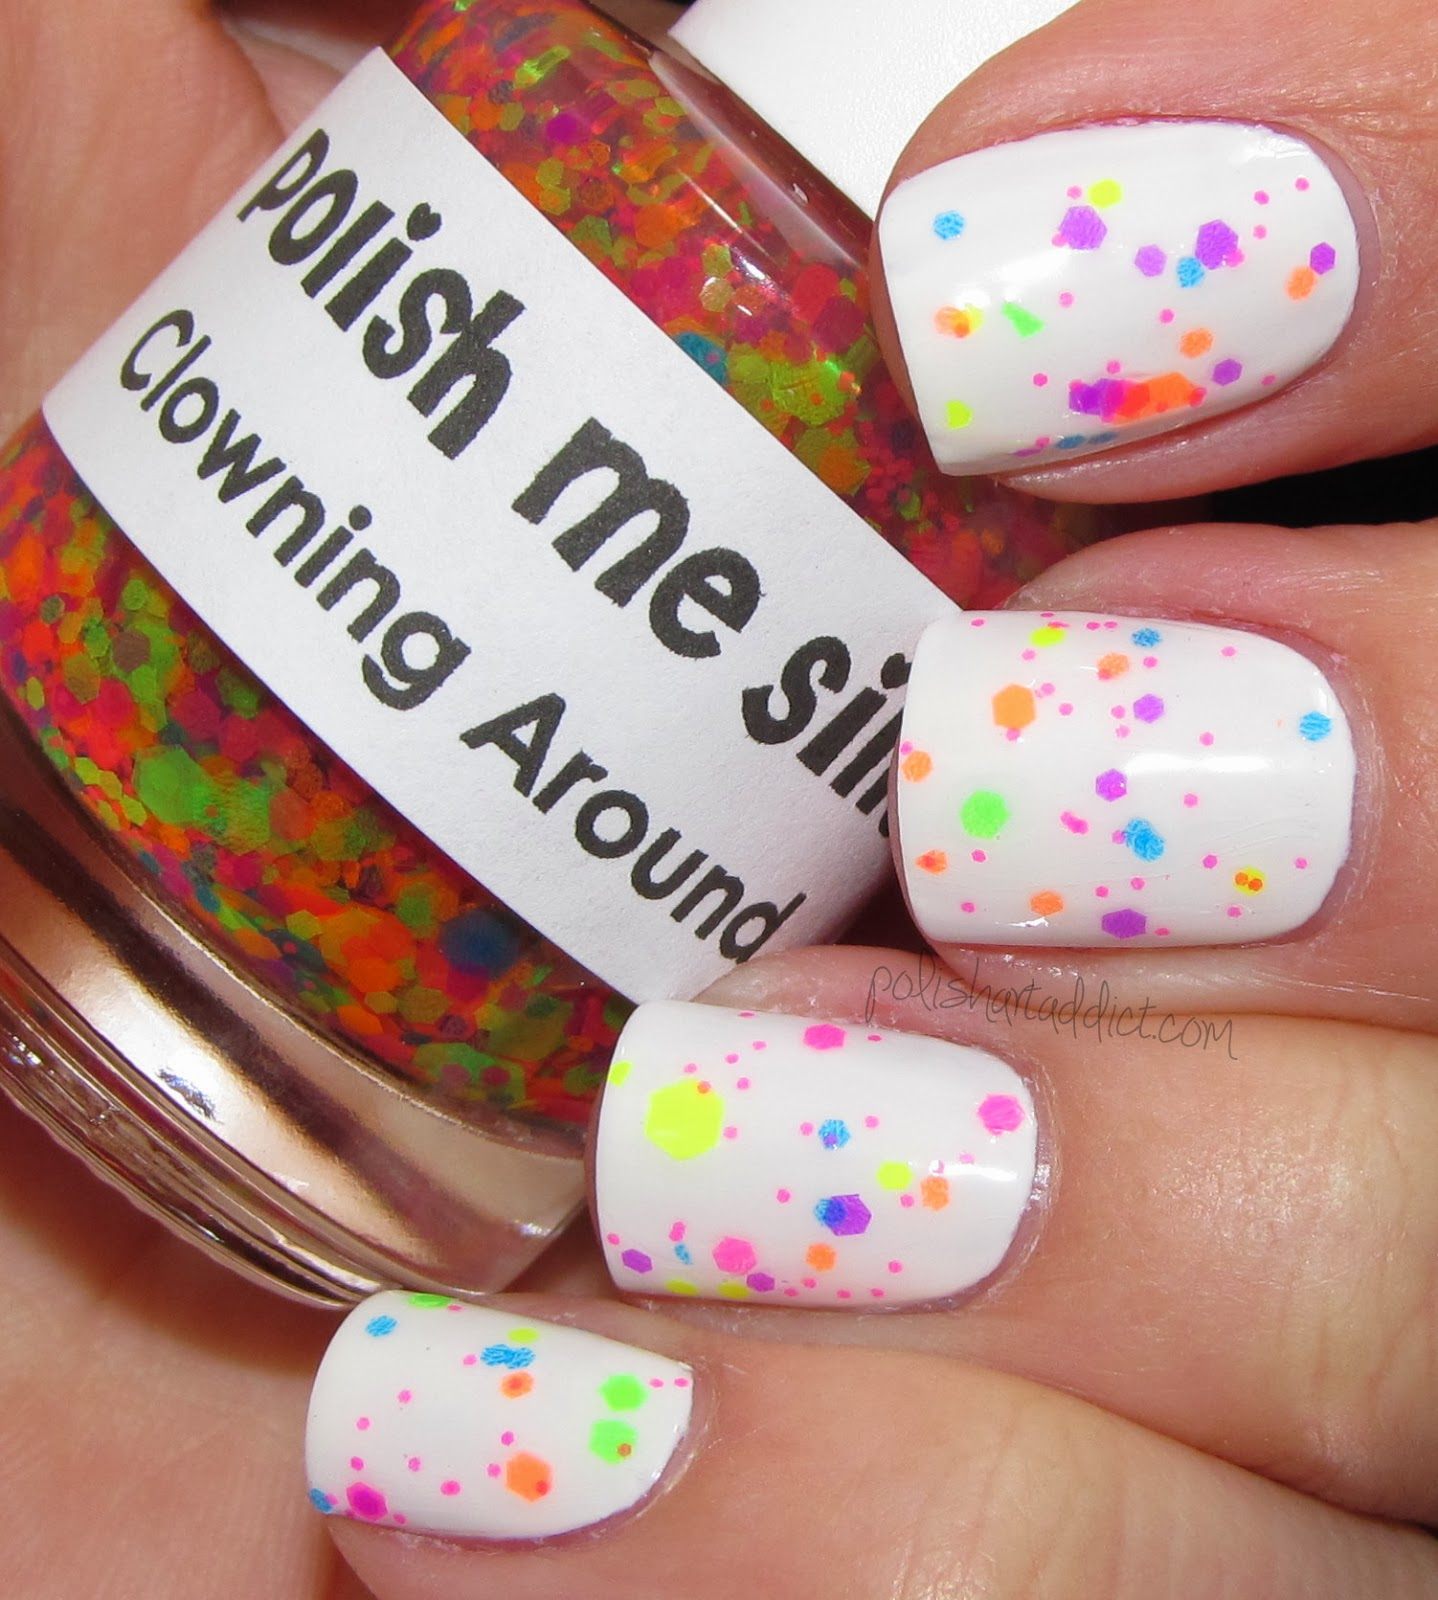 Lush Lacquer/Polish Me Silly - Clowning Around